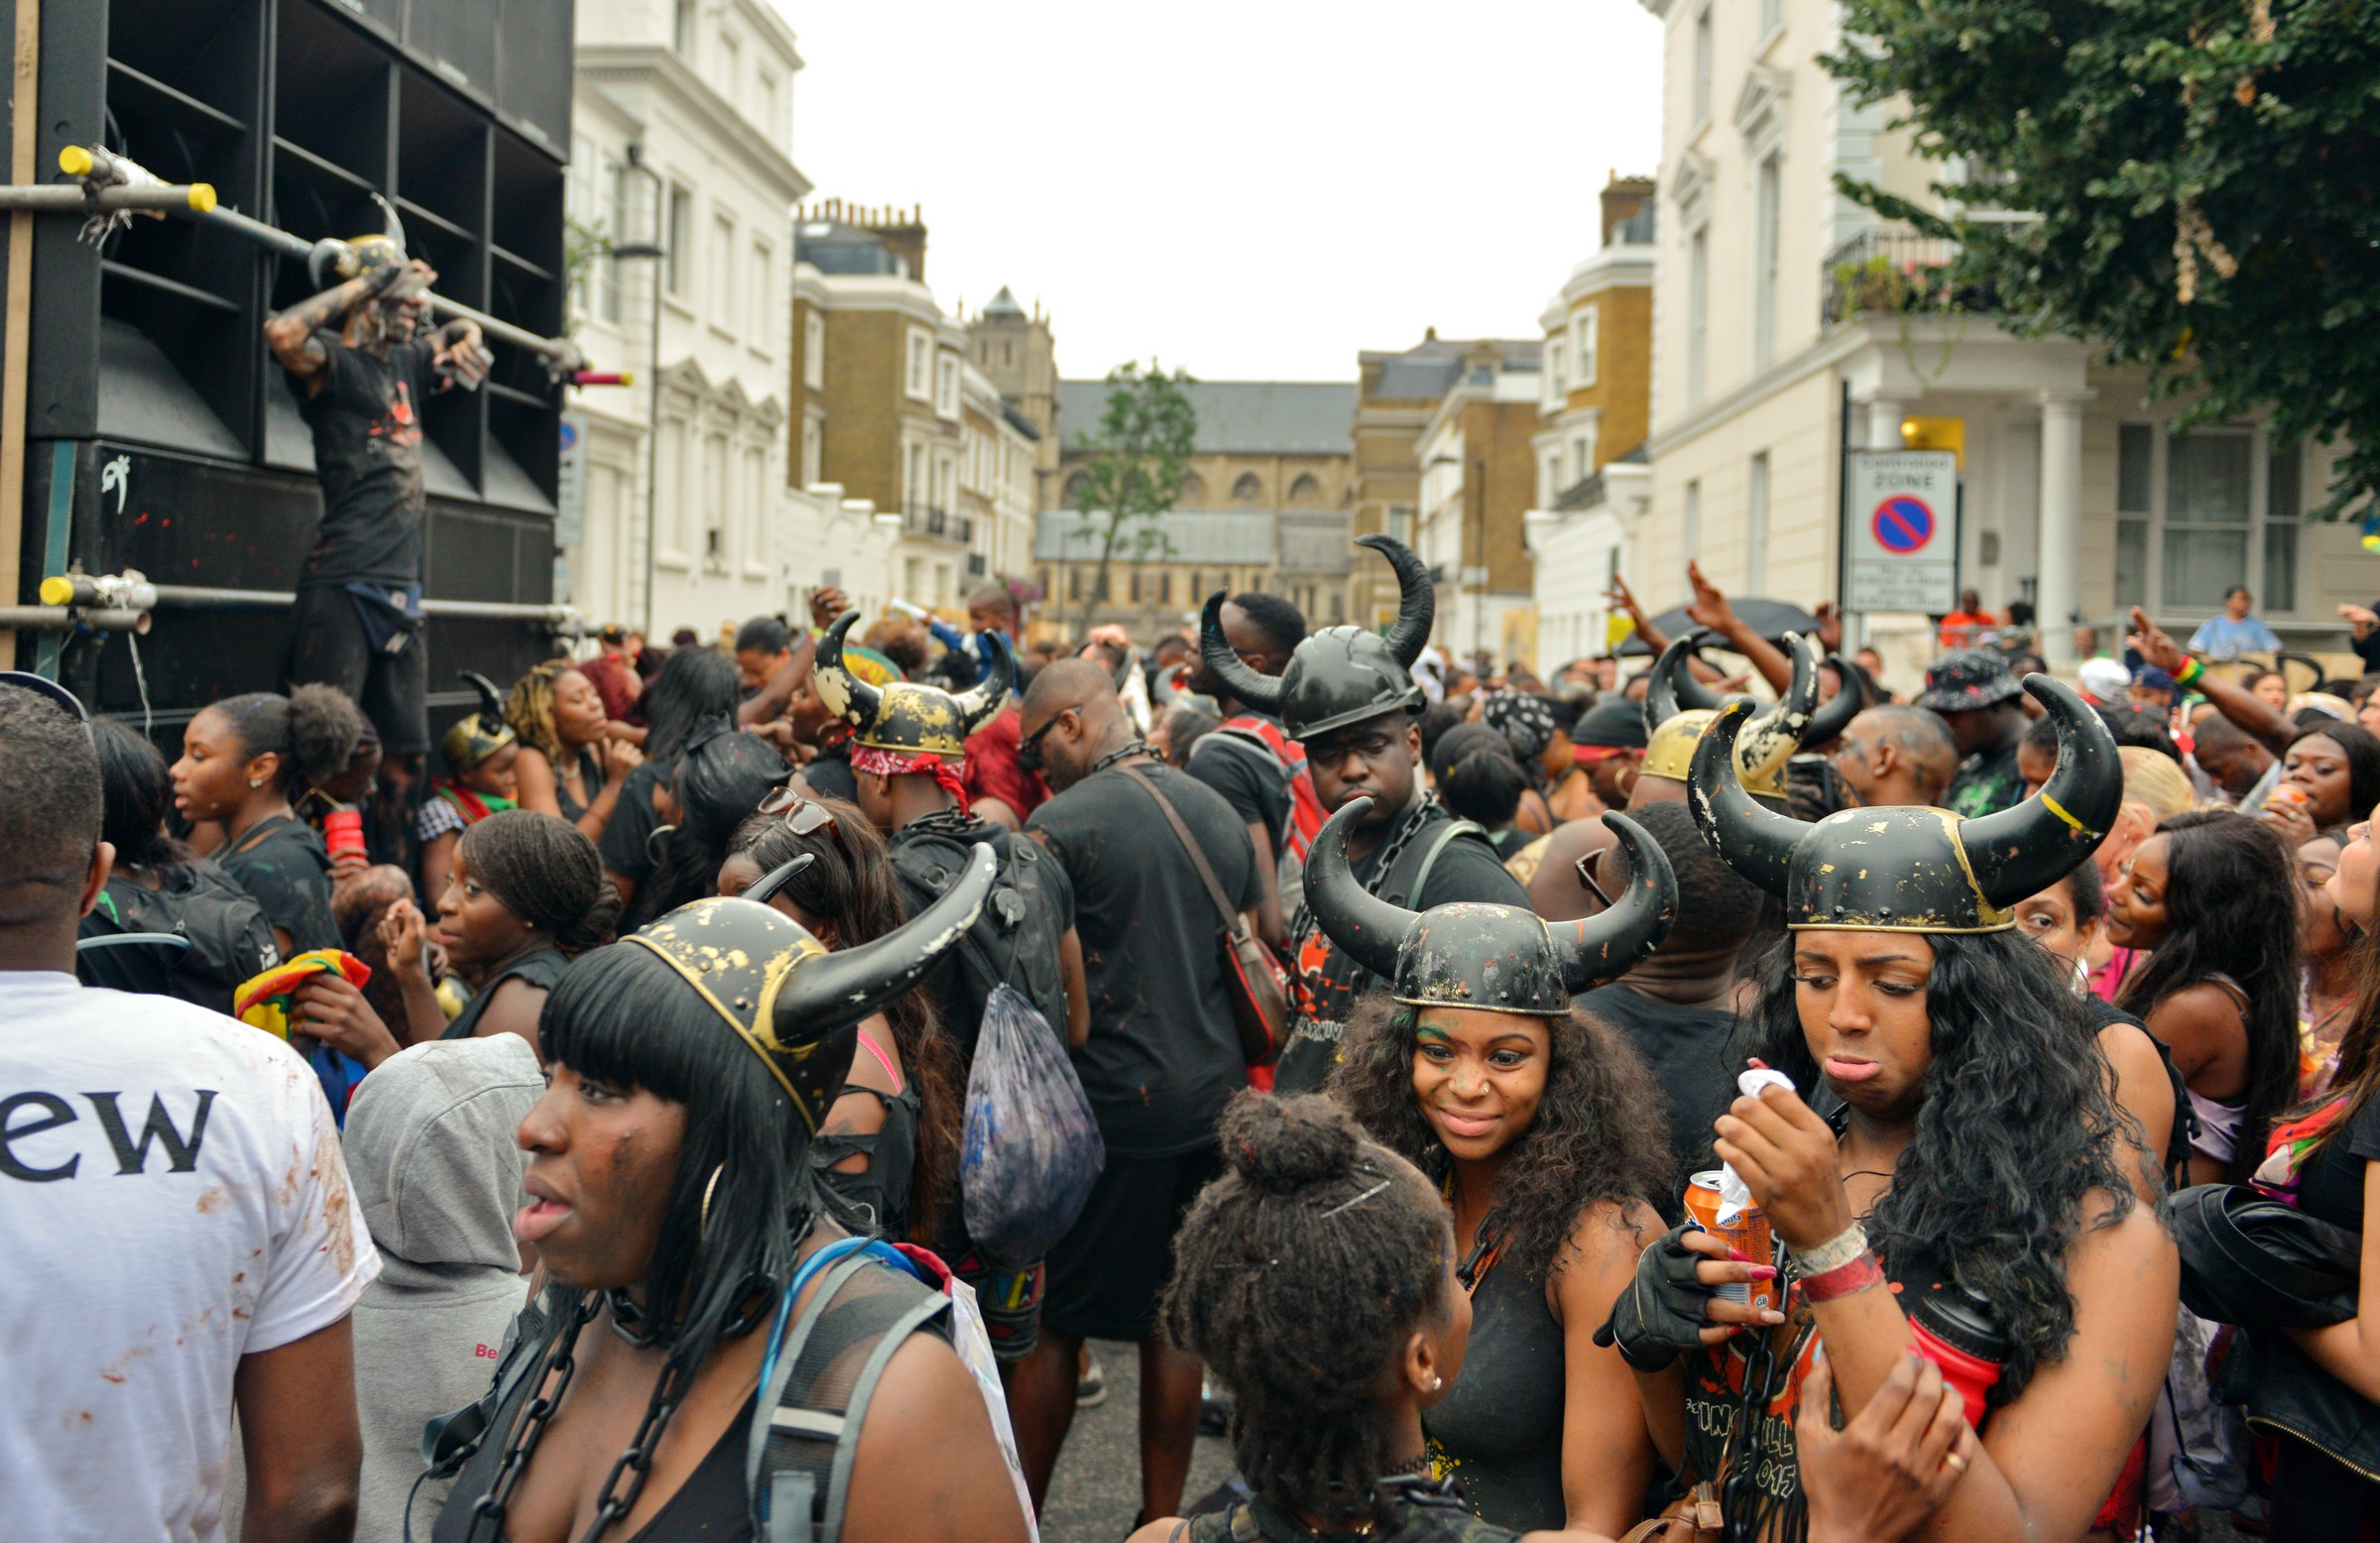 Horny ladies at Notting Hill Carnival